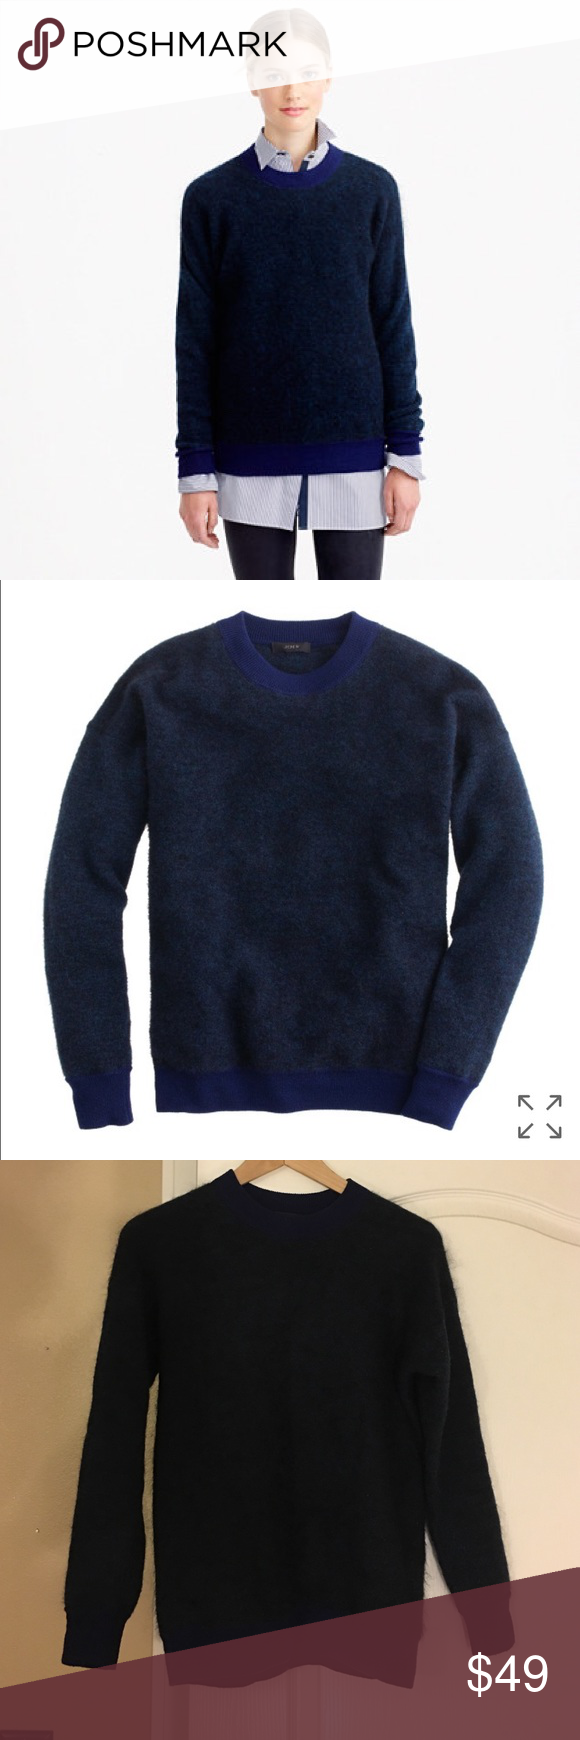 J Crew brushed mohair boyfriend sweater New without tag. Navy ...